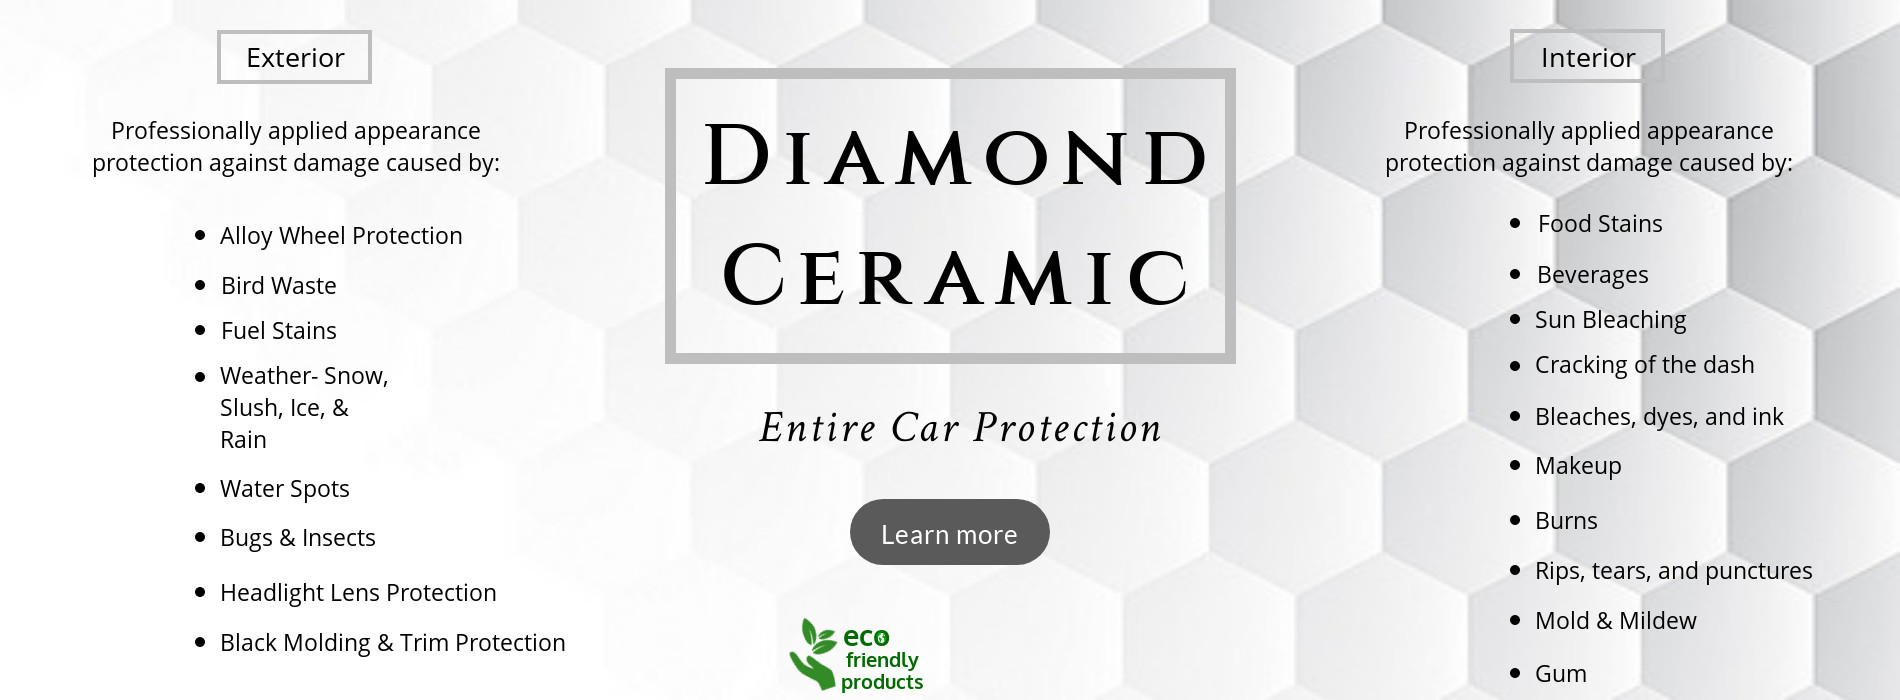 Diamond Ceramic